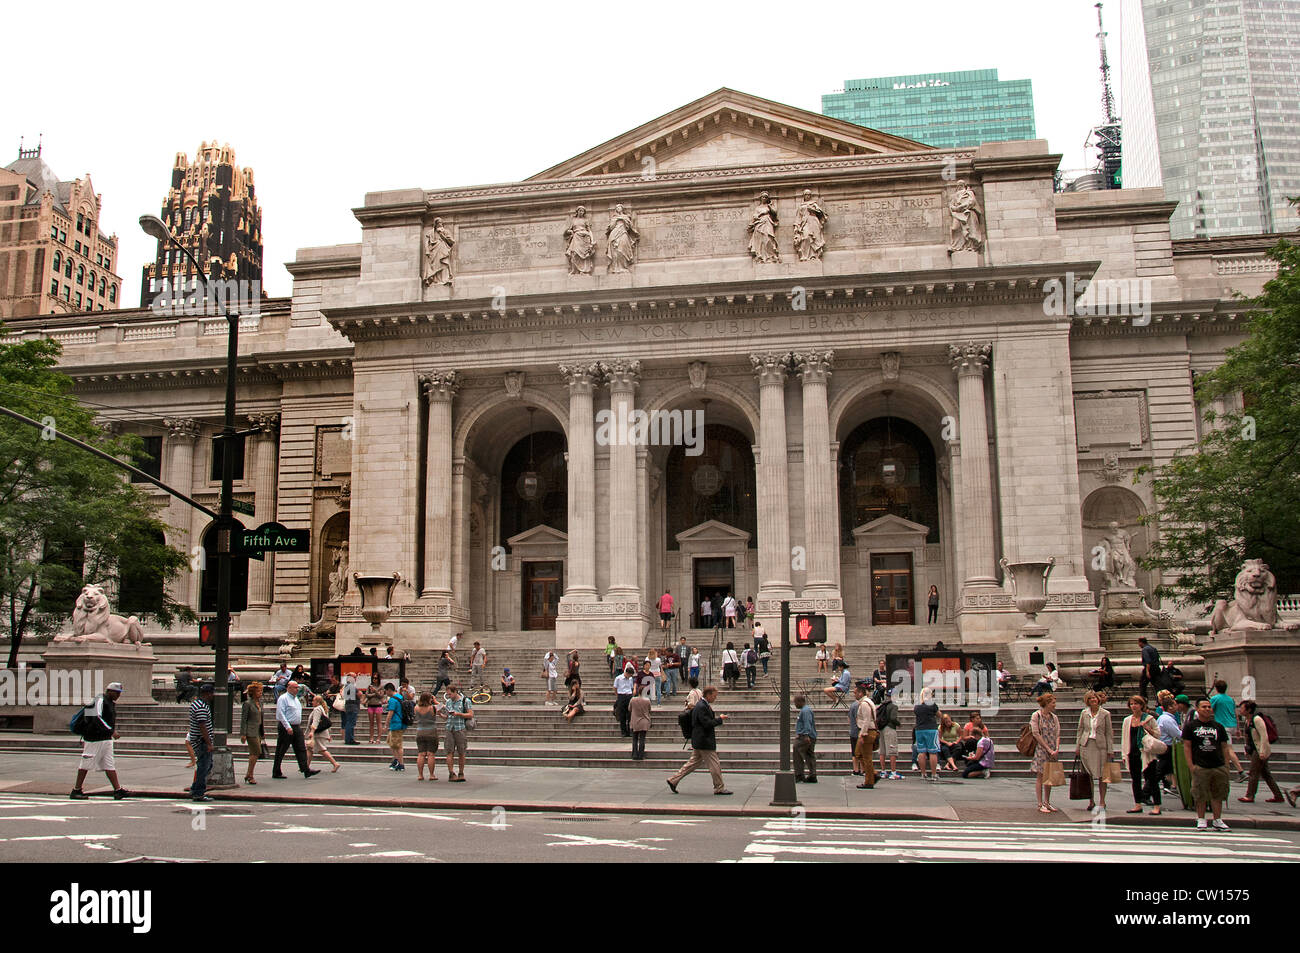 The New York Public Library 5th Avenue United States of America - Stock Image